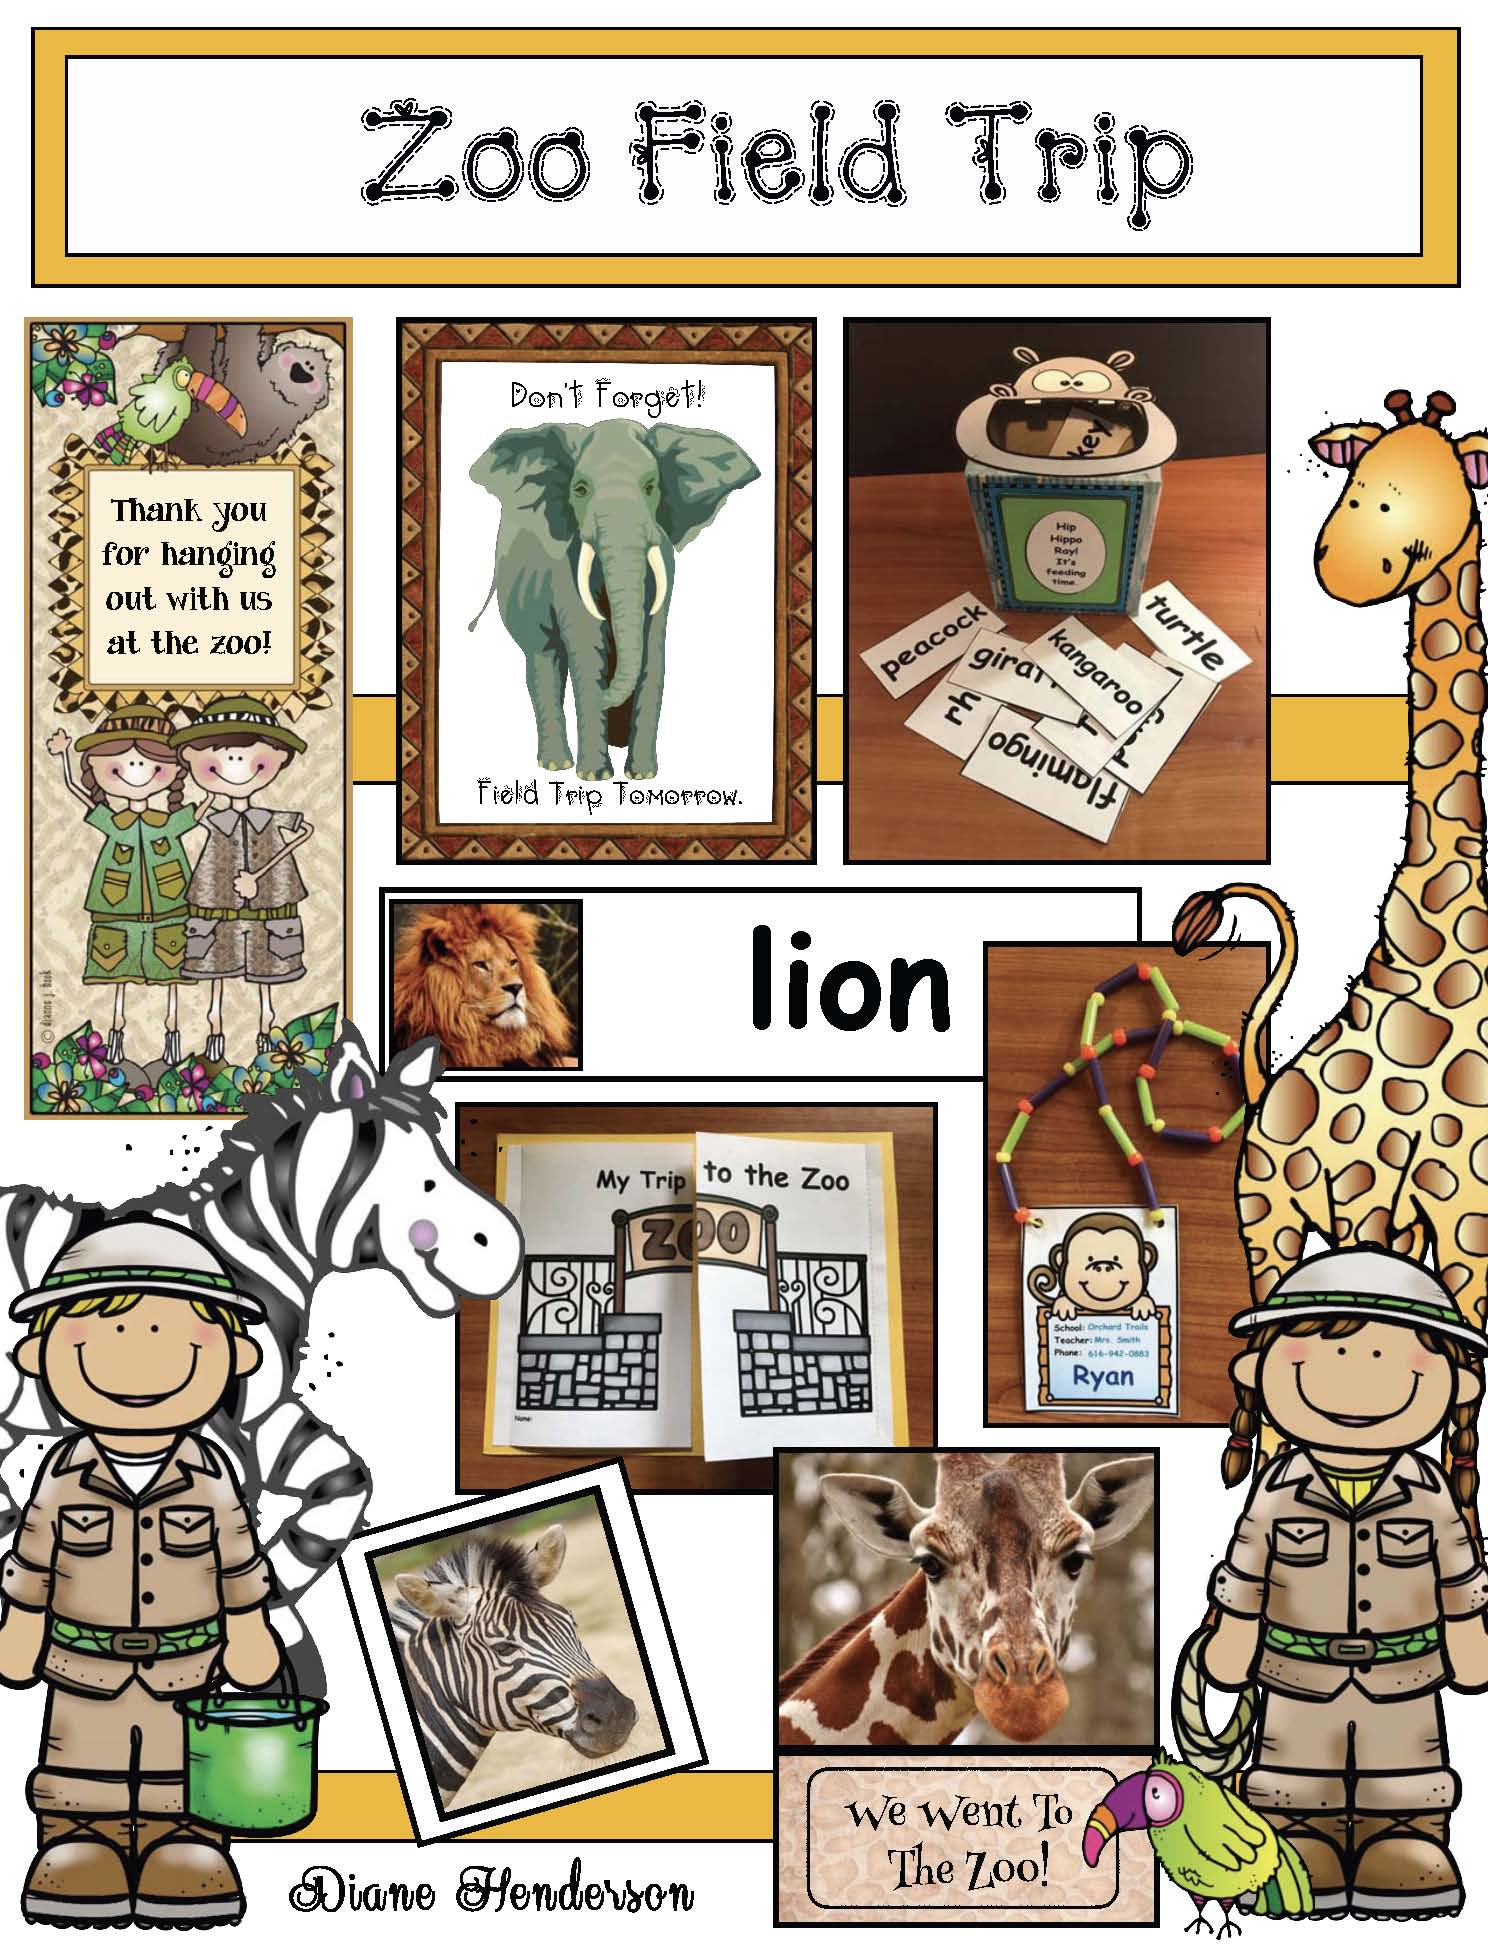 zoo activities, animal activities, field trip tips, zoo field trip, activites for after a field trip, field trip checklist, animal writing prompts, zoo writing prompts, name tags for school, animal bulletin board ideas